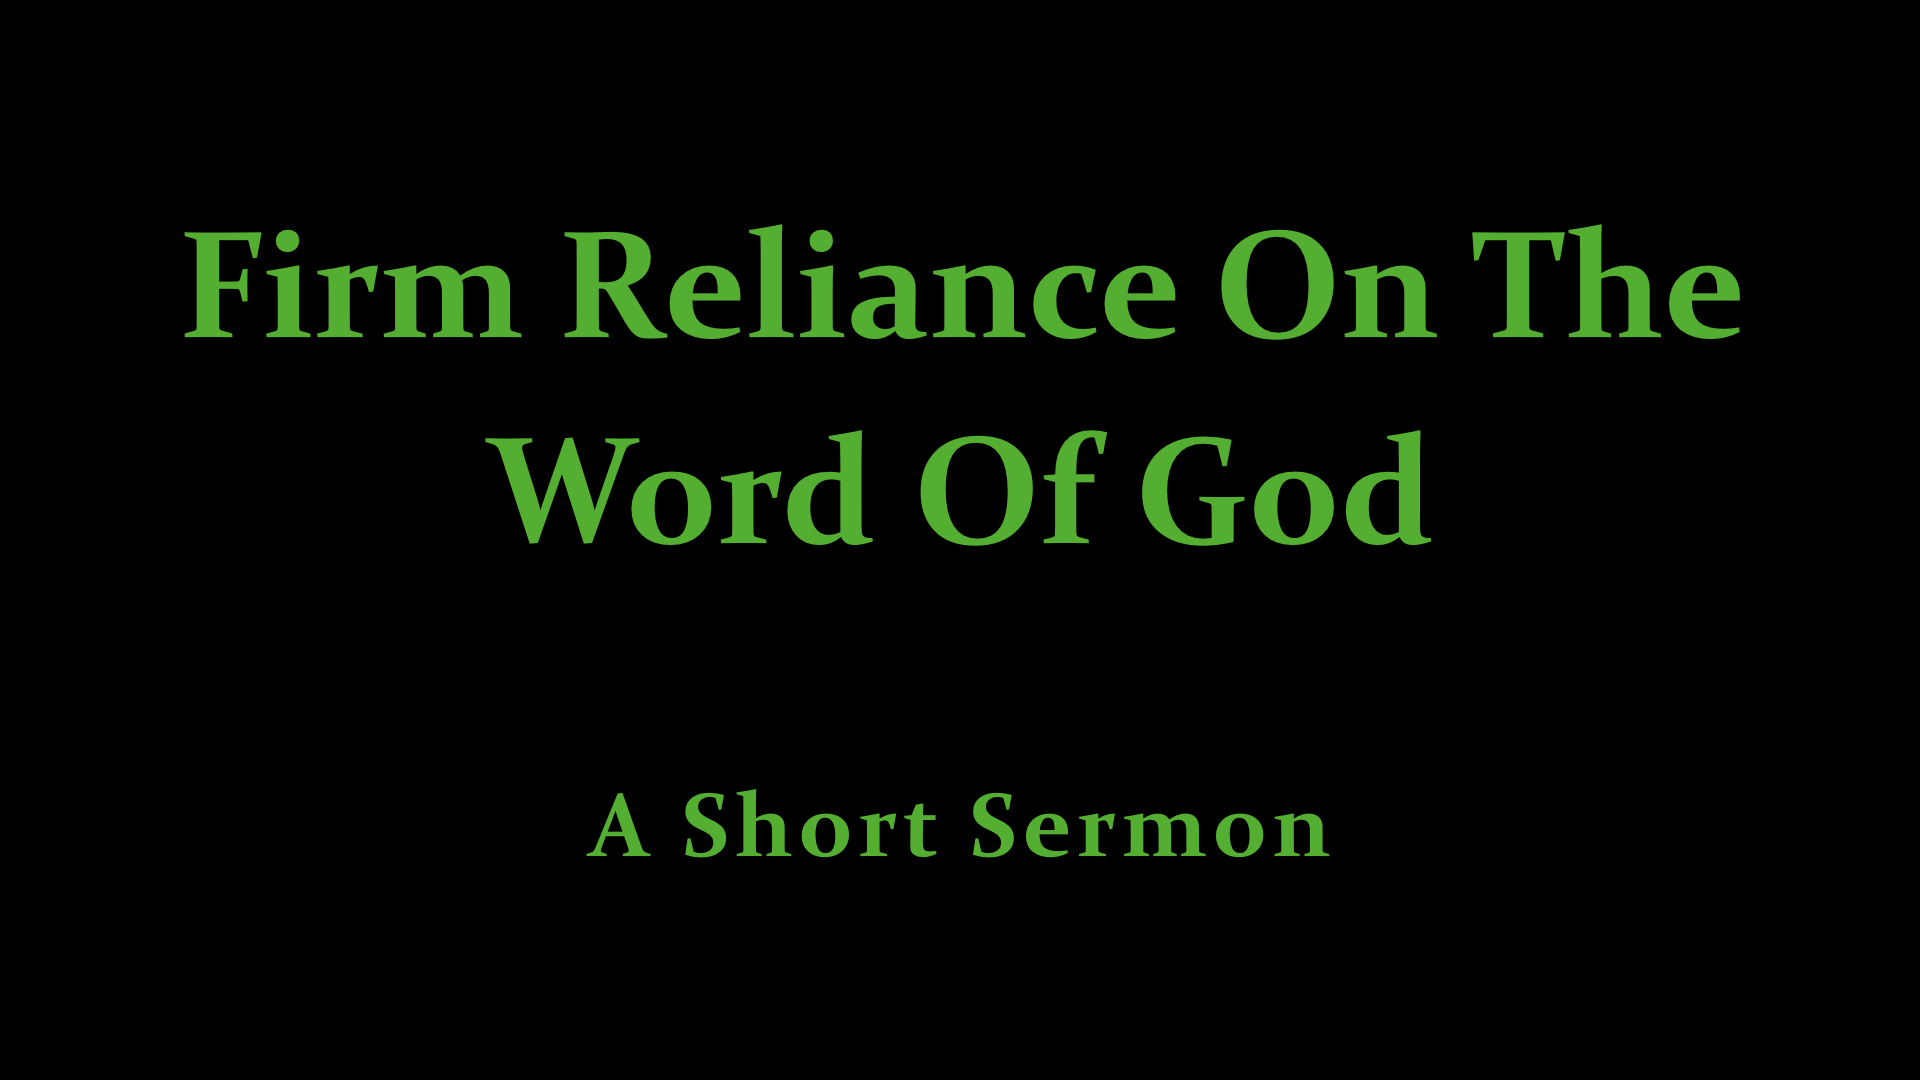 Firm Reliance On The Word Of God - A Short Sermon.jpeg